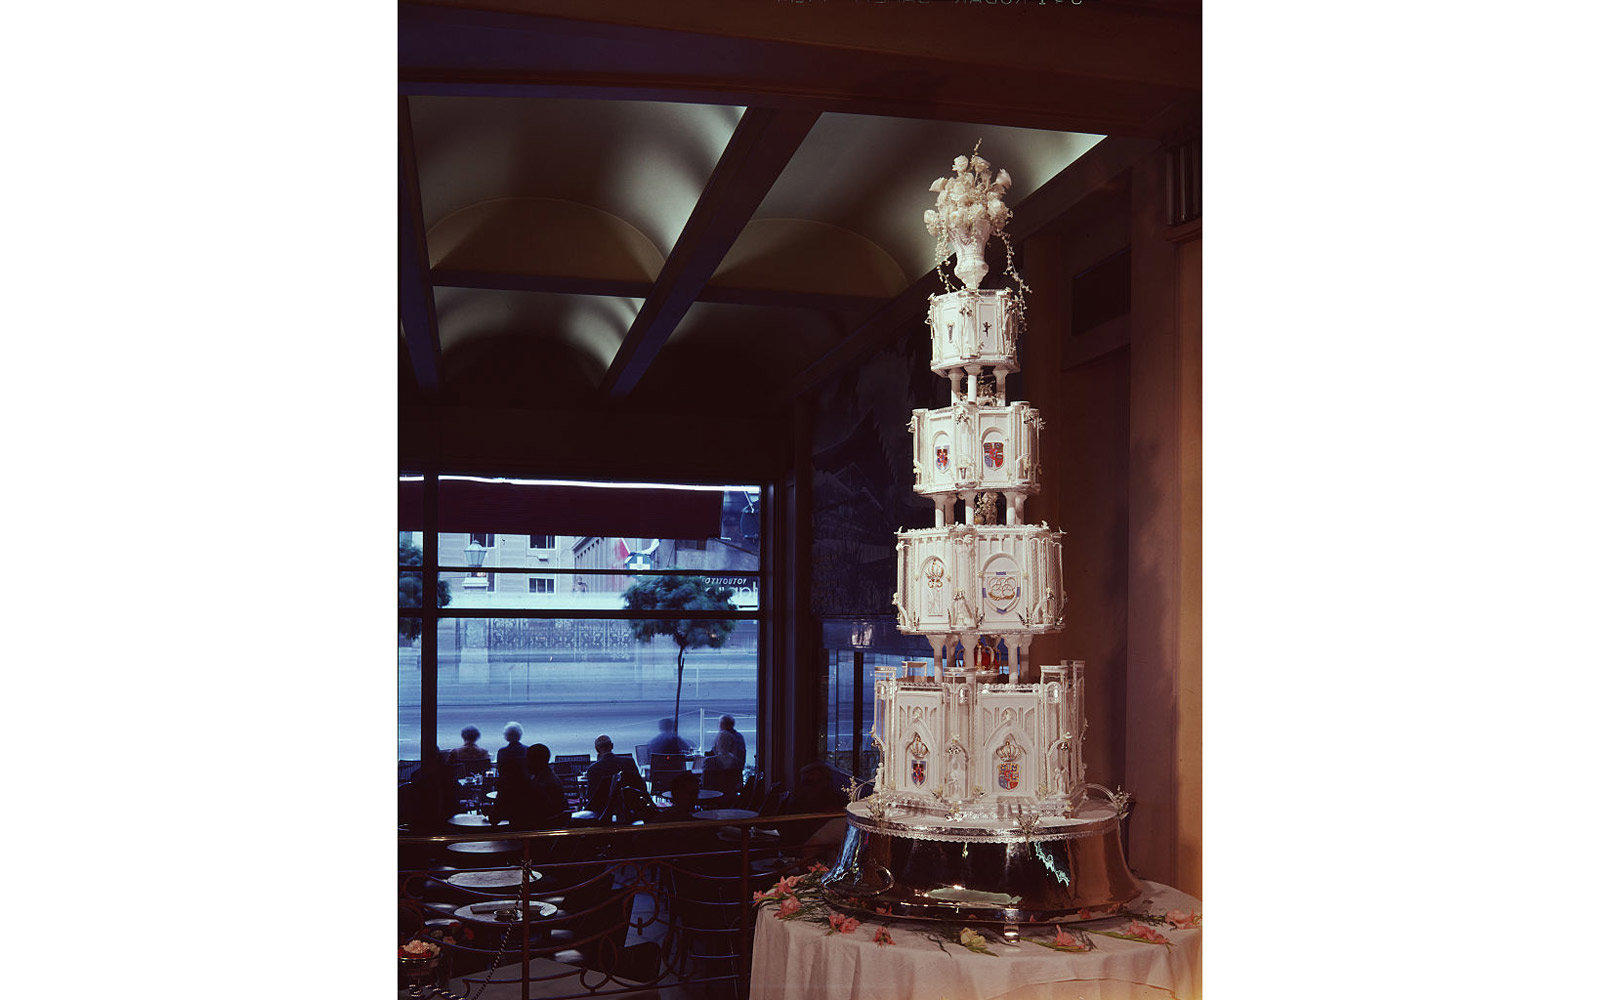 The tiered wedding cake for King Constantine's wedding.